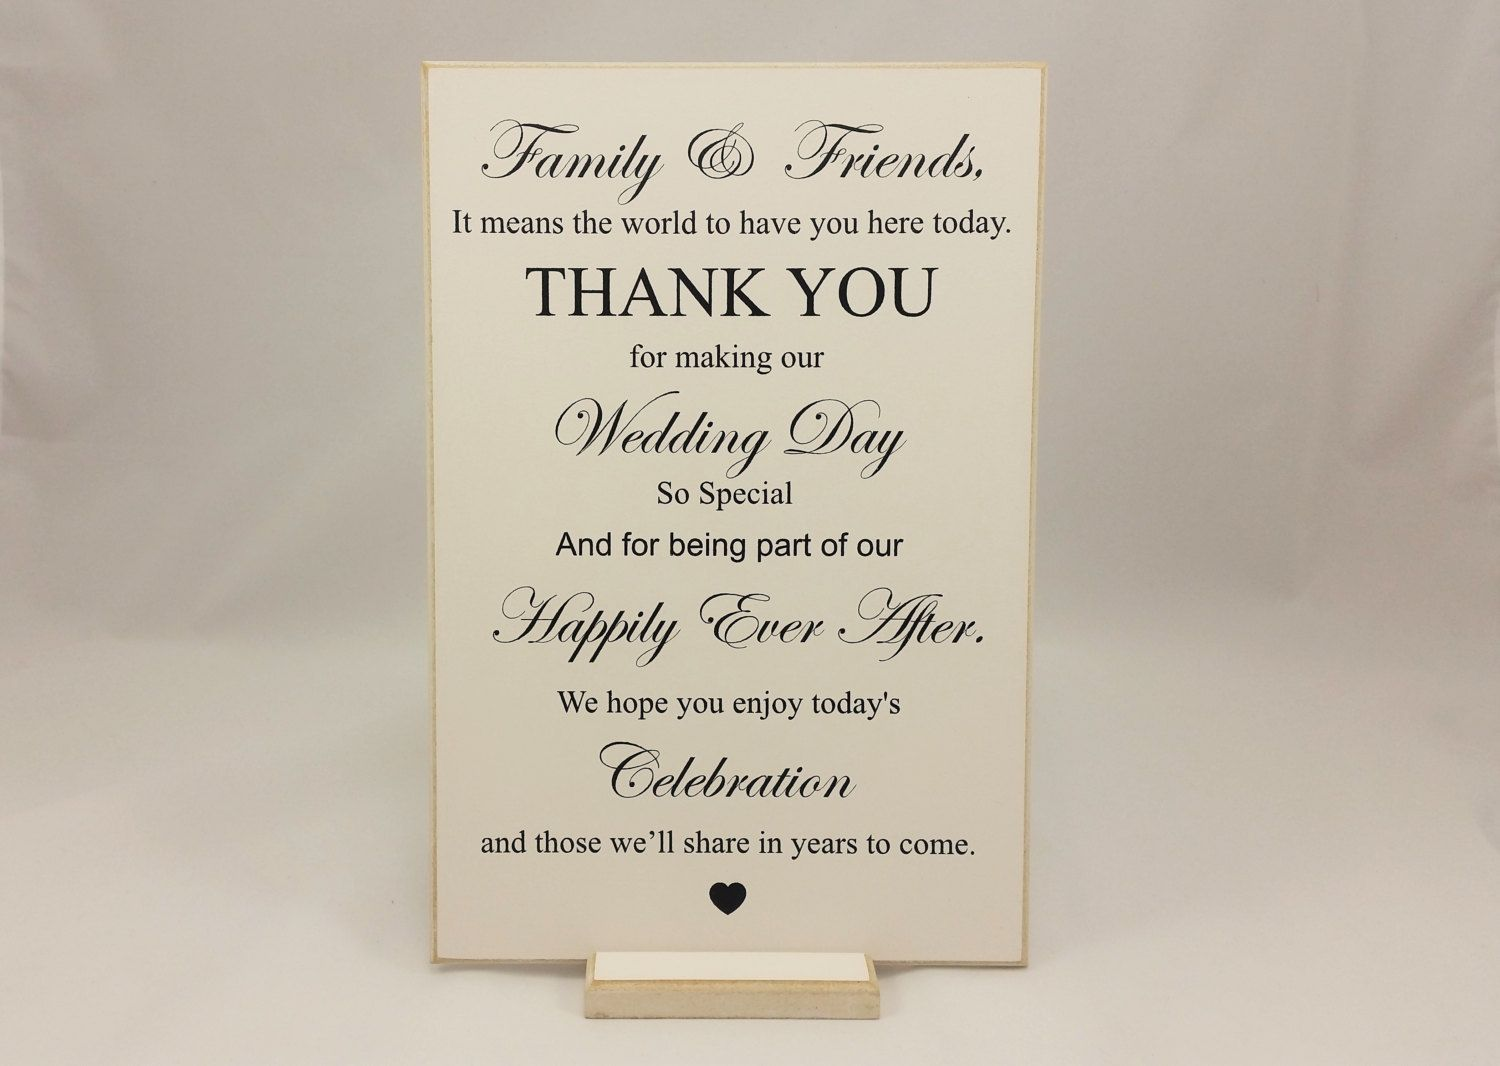 Wedding Decor Signs Amazing Wedding Sign Thank You Family And Friends Bride And Groom 2018